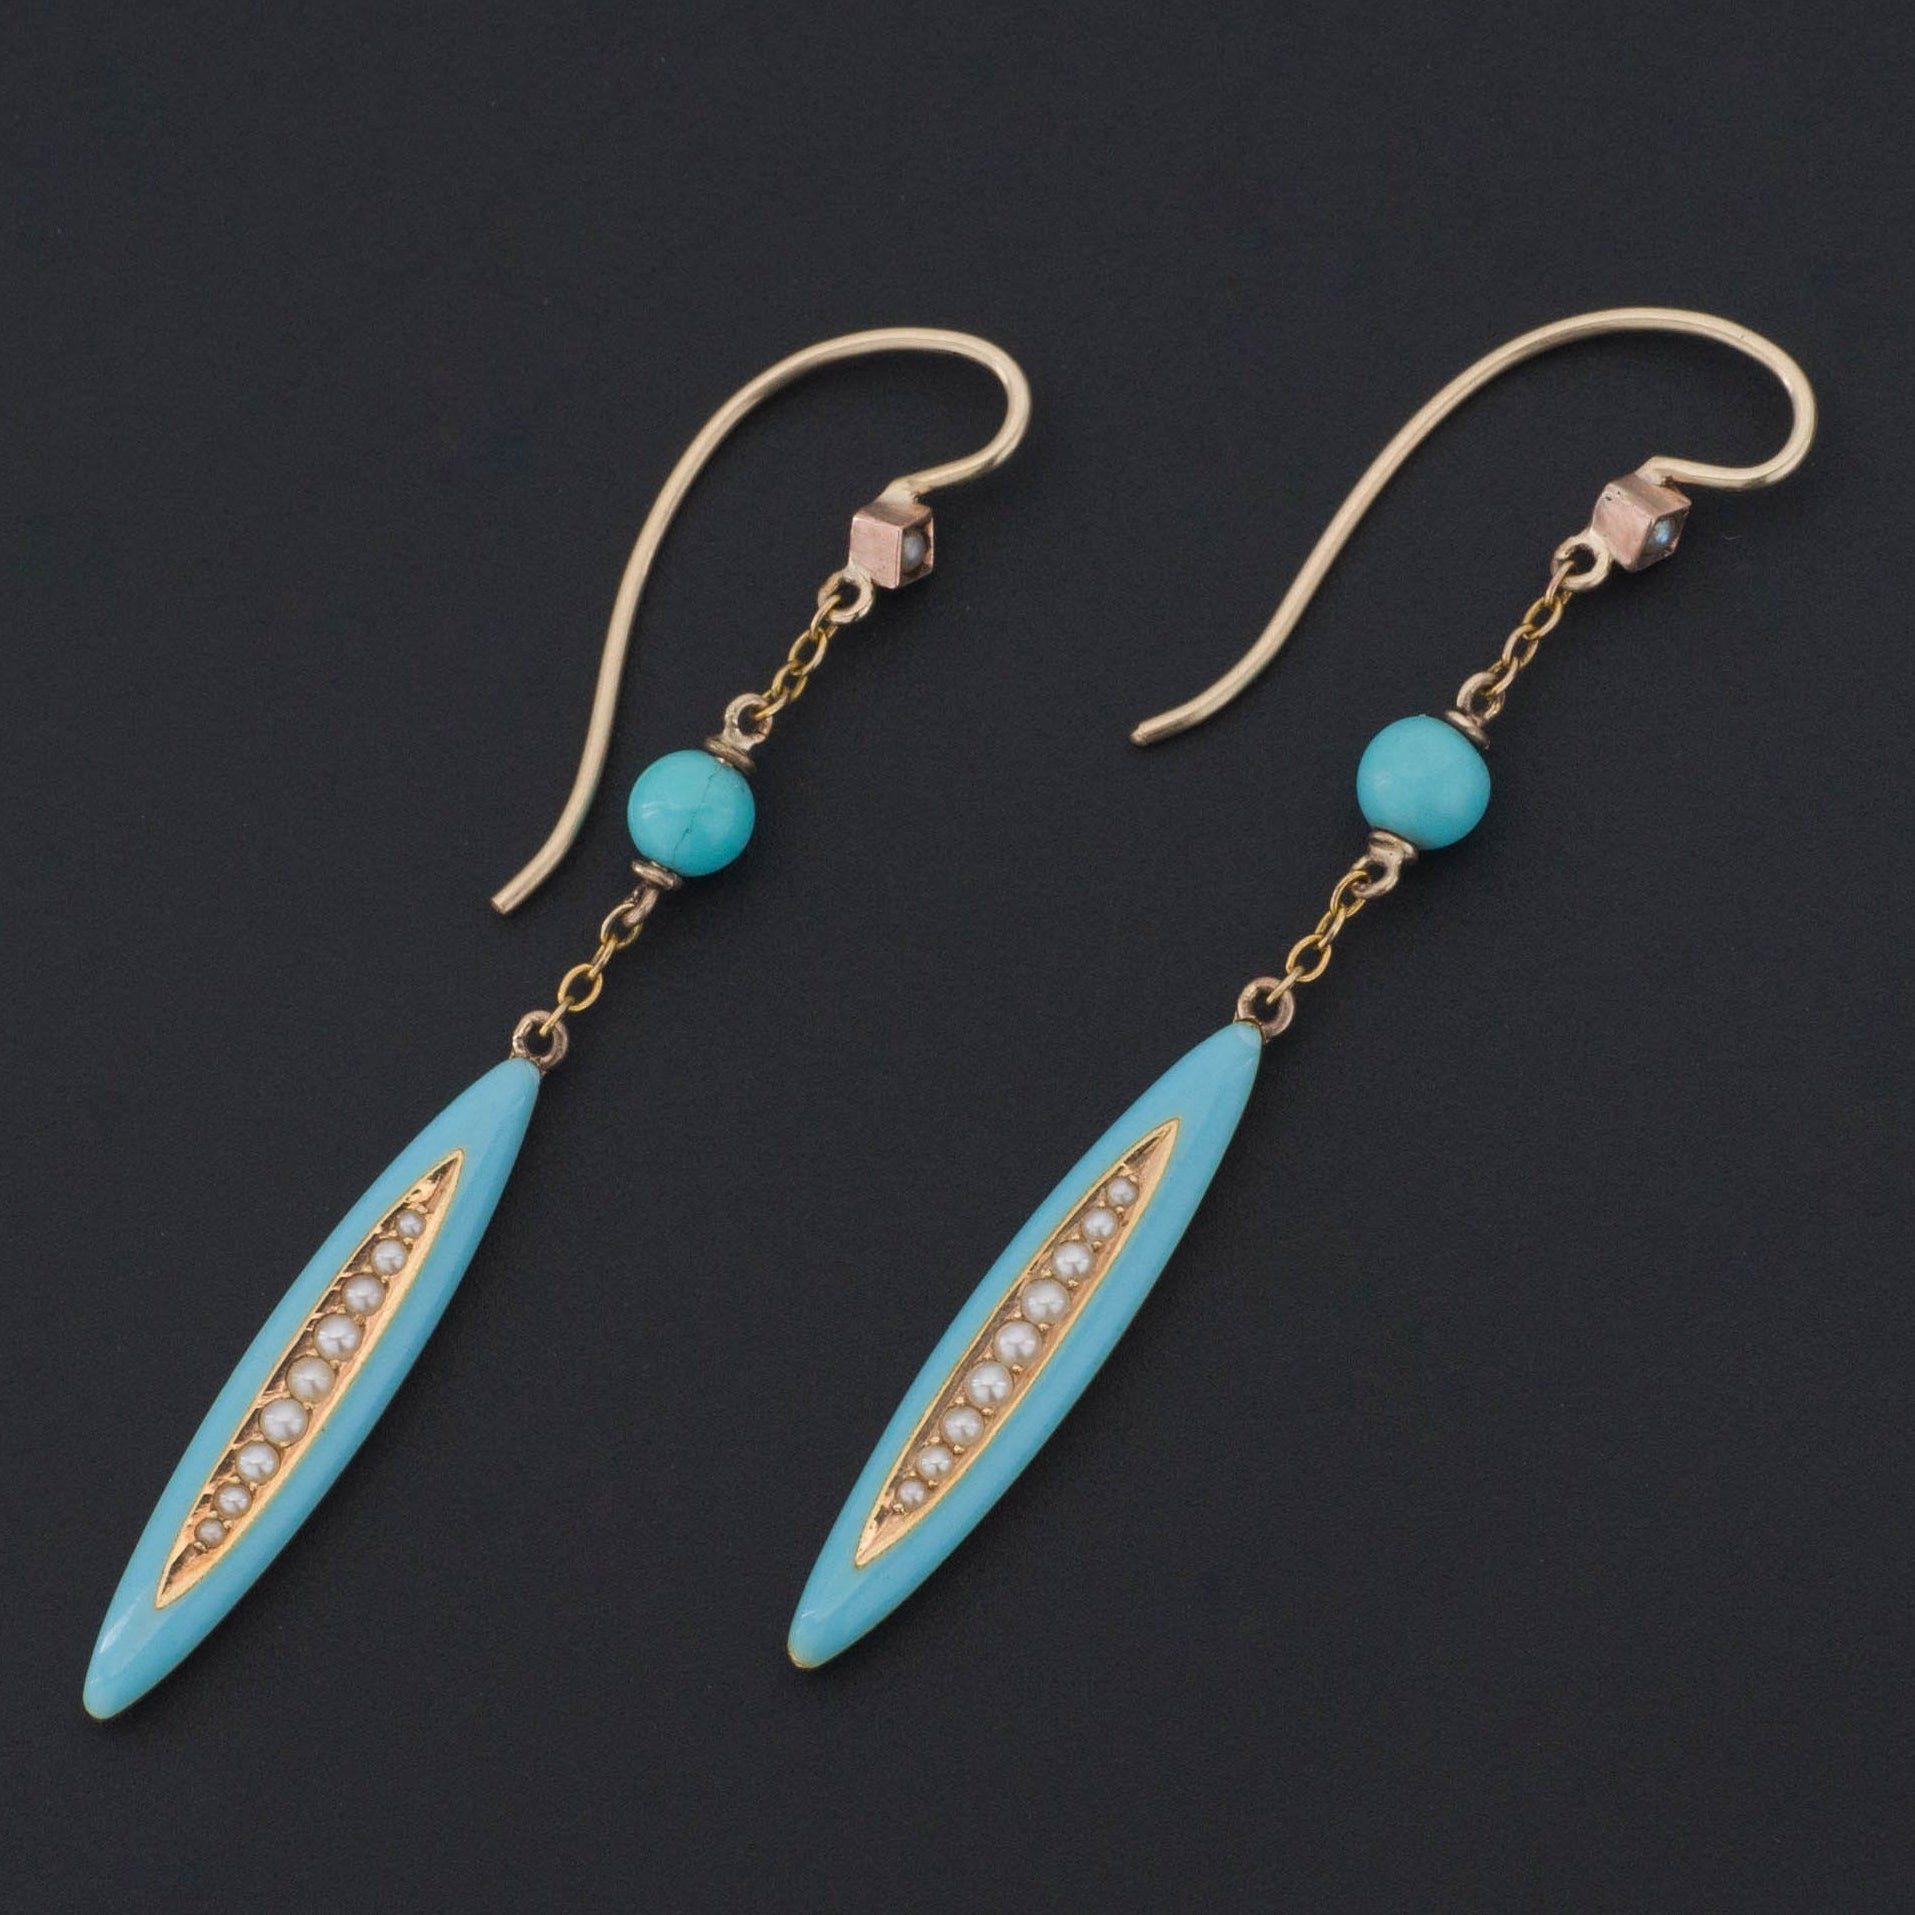 Turquoise Enamel & Pearl Earrings | 14k Gold Earrings | Dangle Earrings | Something Blue Bridal Earrings | Antique Pin Conversion Earrings